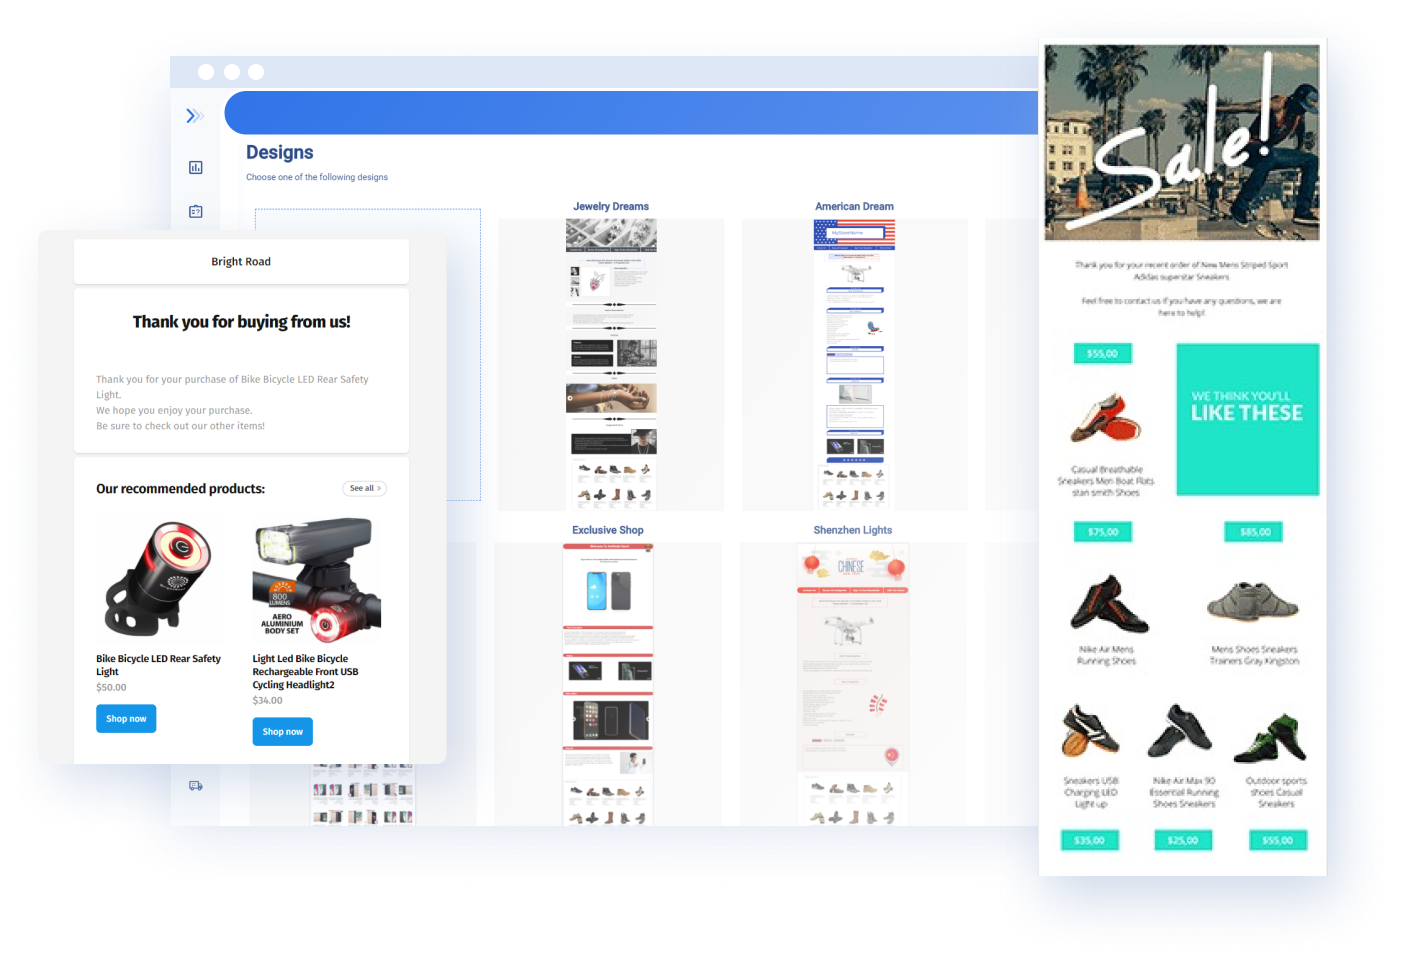 Automate Messages and Cross Promote Other Products